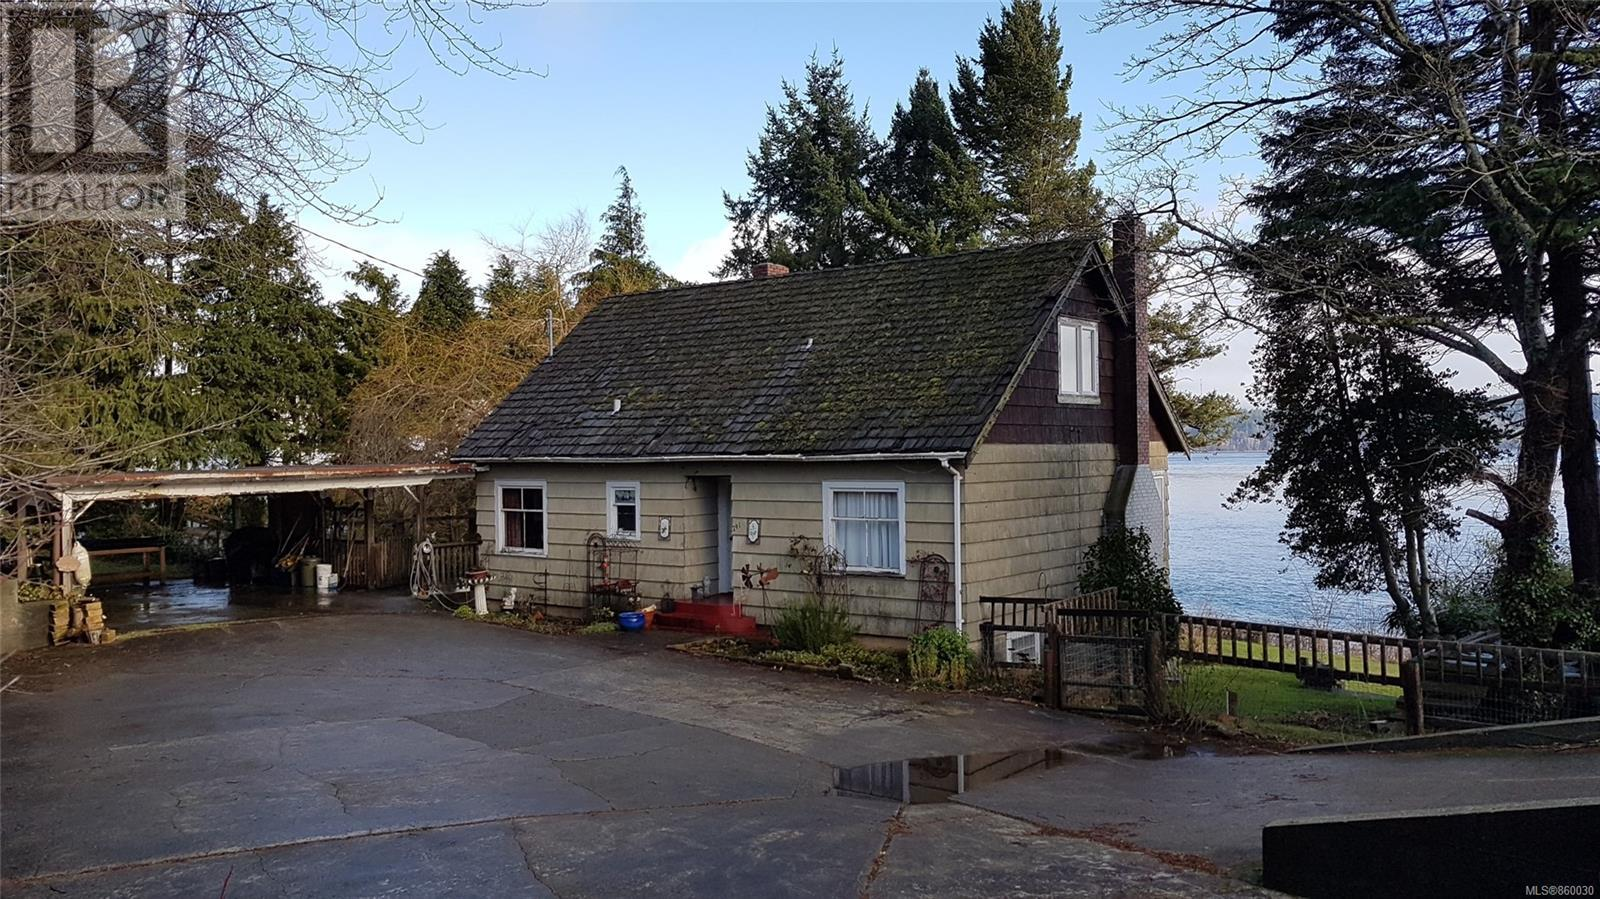 291 Island Hwy, campbell river, British Columbia